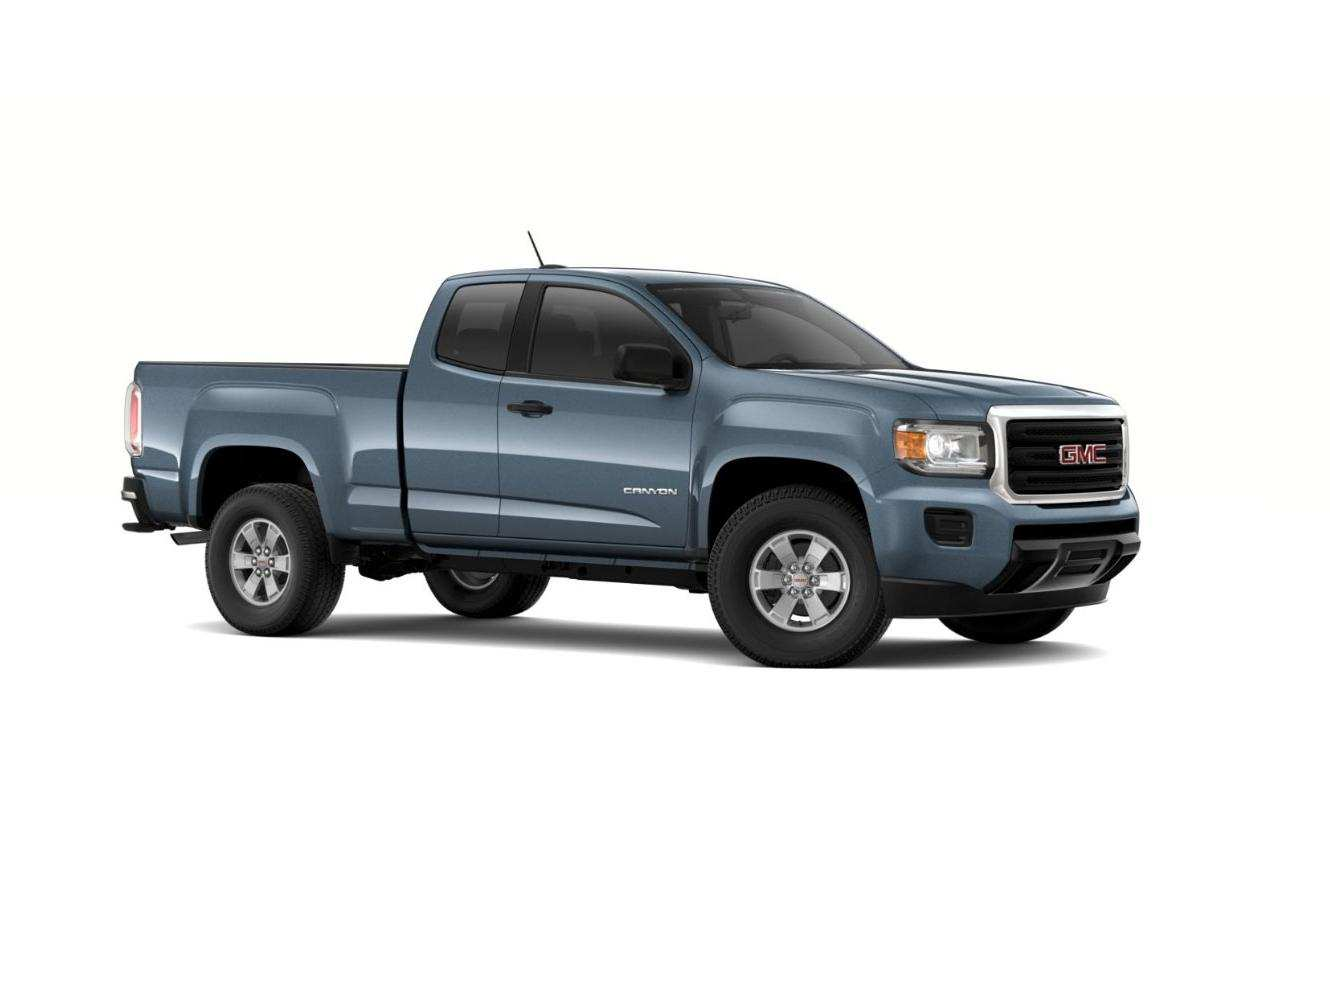 51 New Best Gmc 2019 Canyon Release Date Exterior Reviews by Best Gmc 2019 Canyon Release Date Exterior